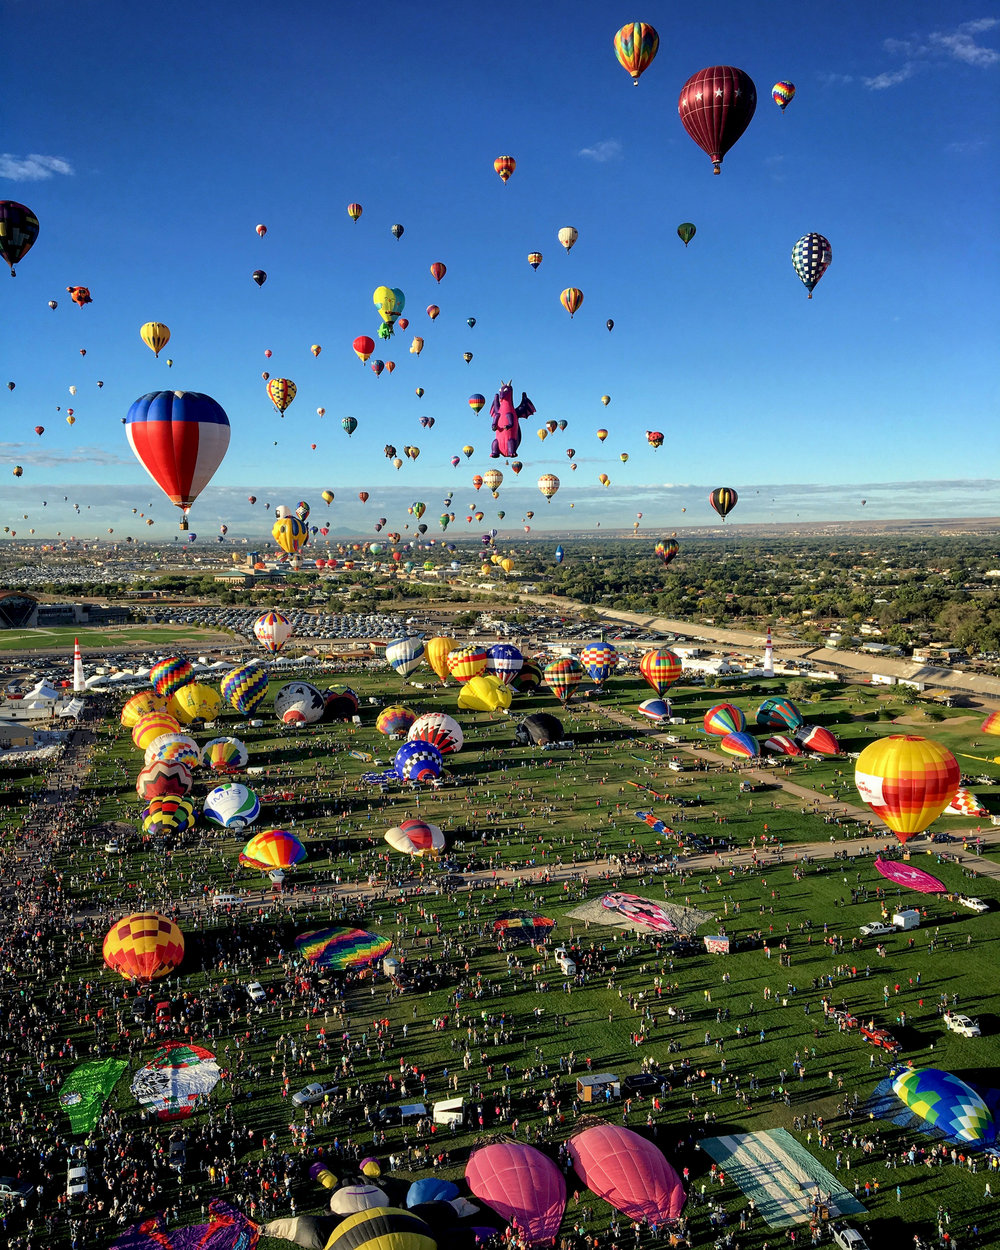 "10/5/2016 Albuquerque International Balloon Fiesta Albuquerque, New Mexico, USA 35°11′46″N 106°35′51″W   The Albuquerque International Balloon Fiesta is currently underway in Albuquerque, New Mexico, USA. The annual, nine day event is the largest event of its kind in the world with more than 500 balloons. This incredible overview, captured by Alexandra Grumblatt, captures an event known as a ""mass ascension"" when all participants launch in two waves, filling the sky with hundreds of balloons at once."